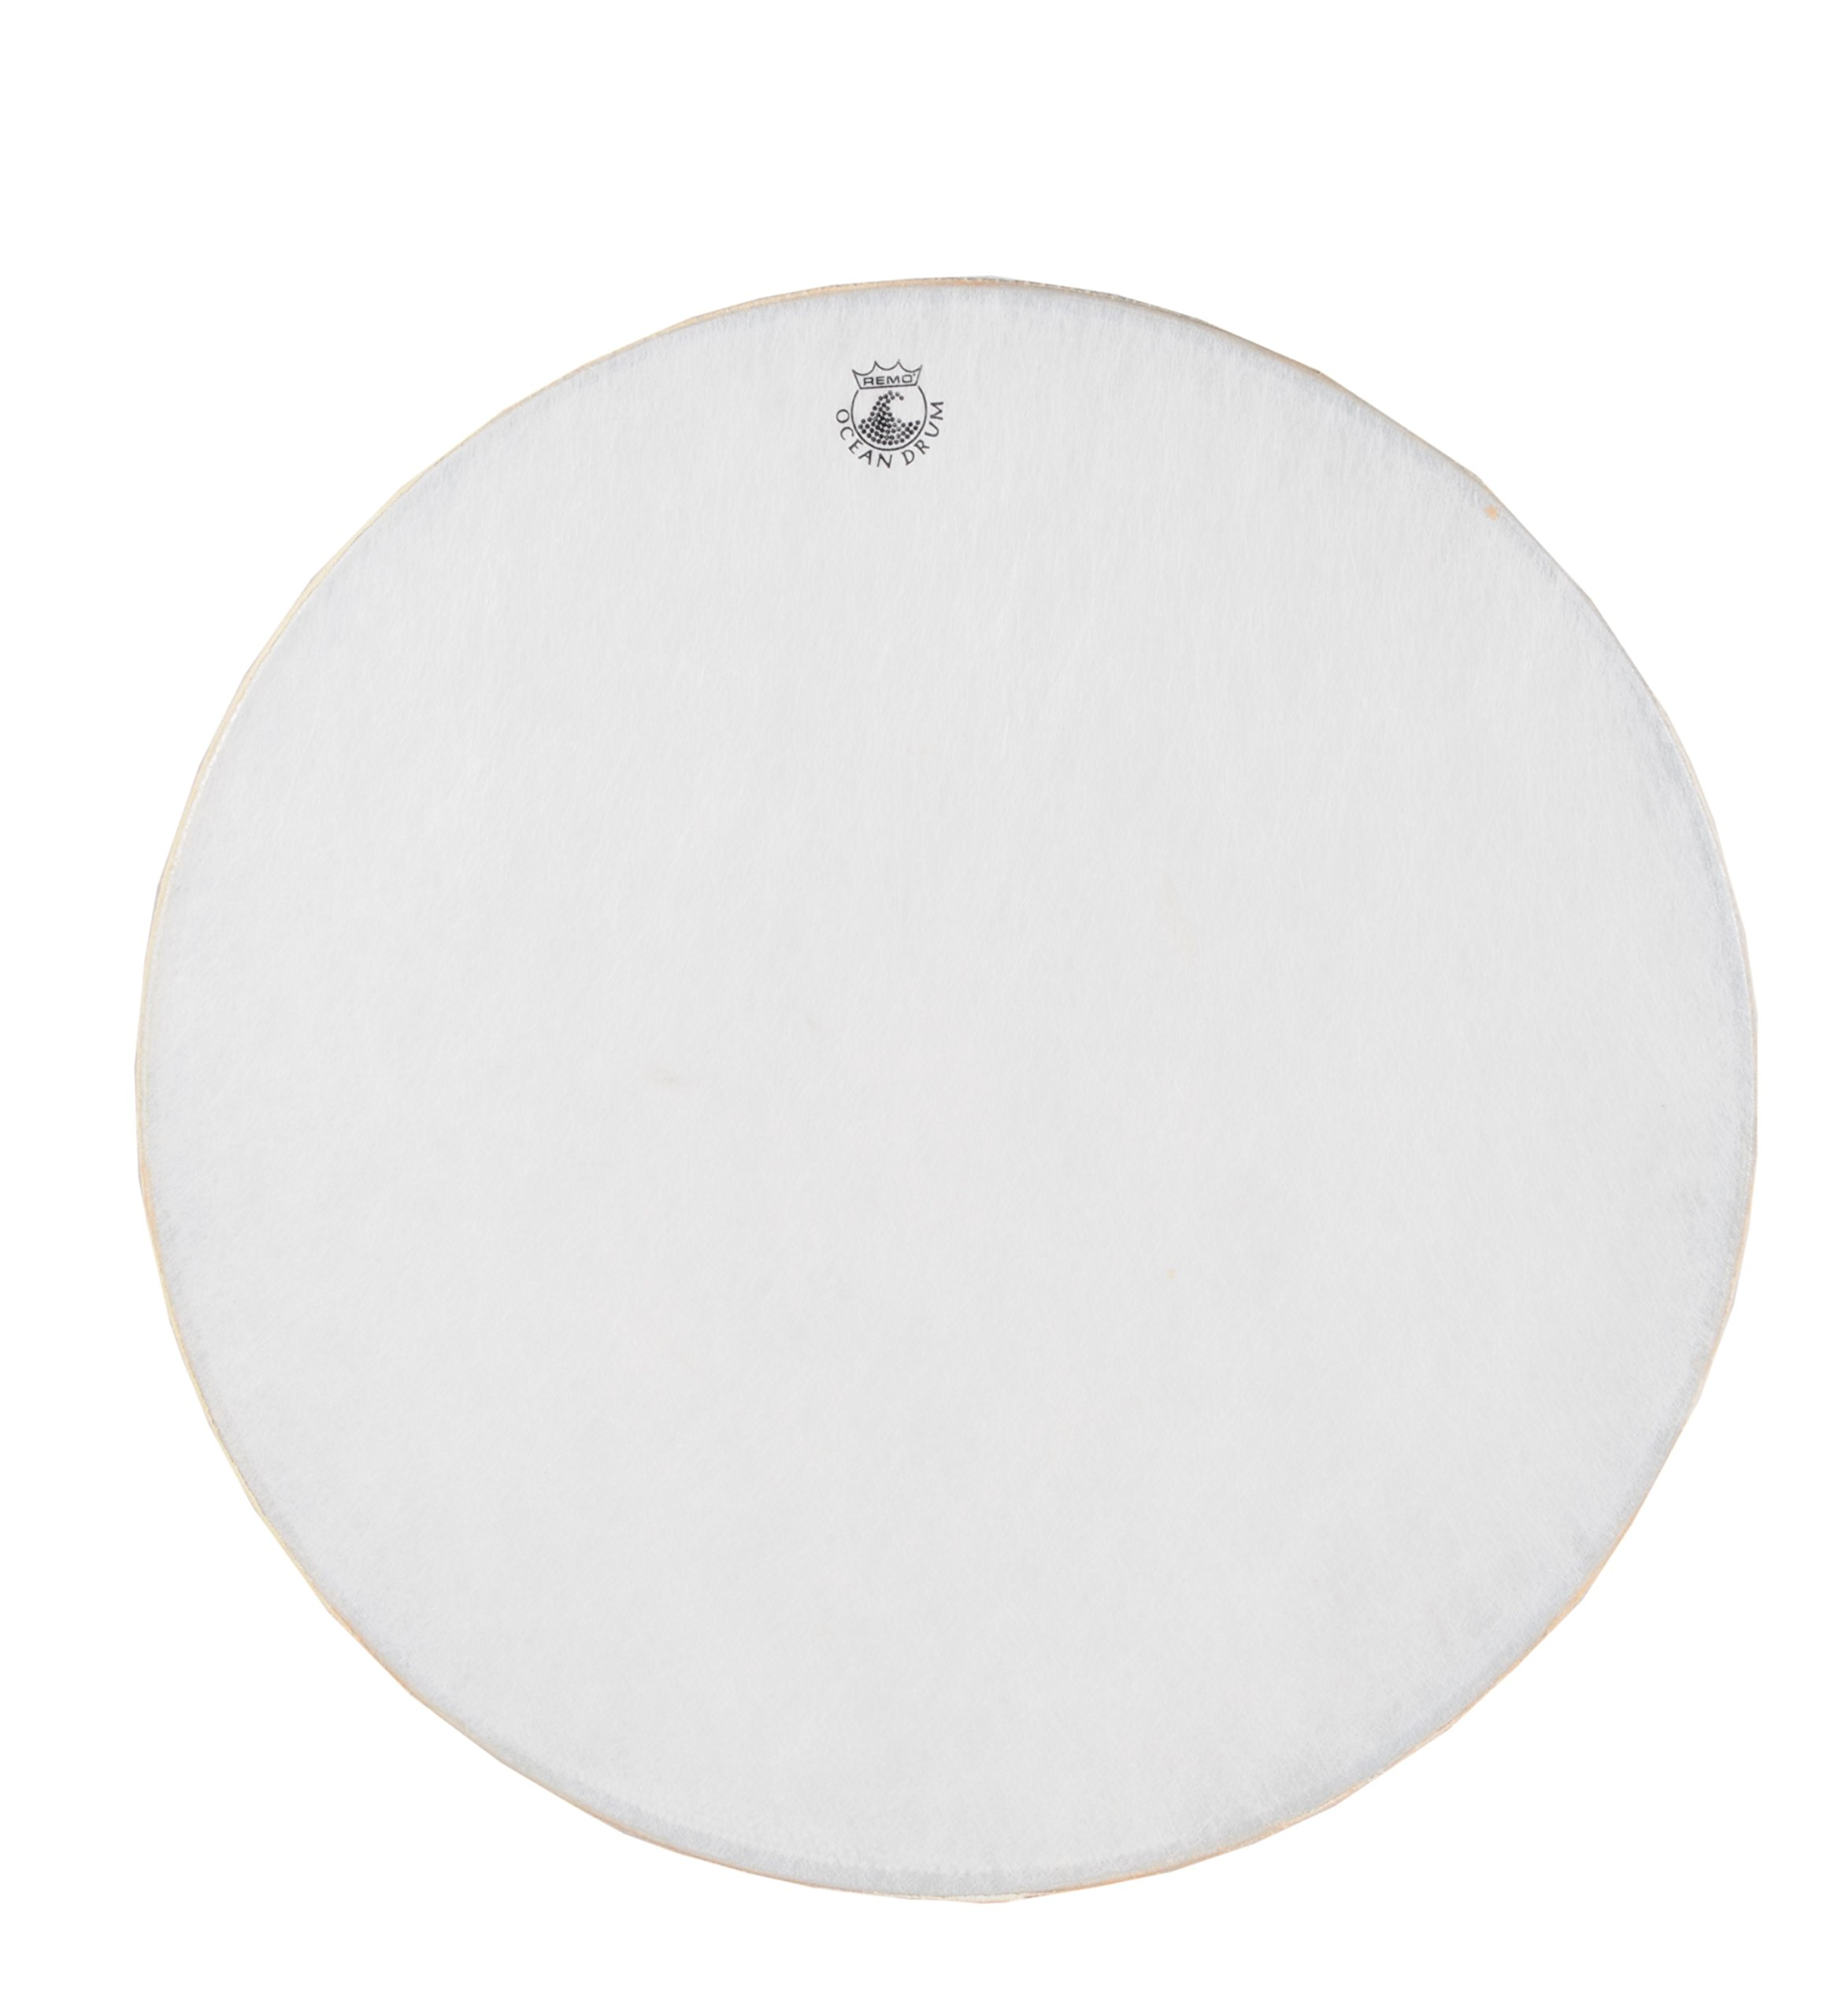 Remo Ocean Drum - Standard, 22'' by Remo